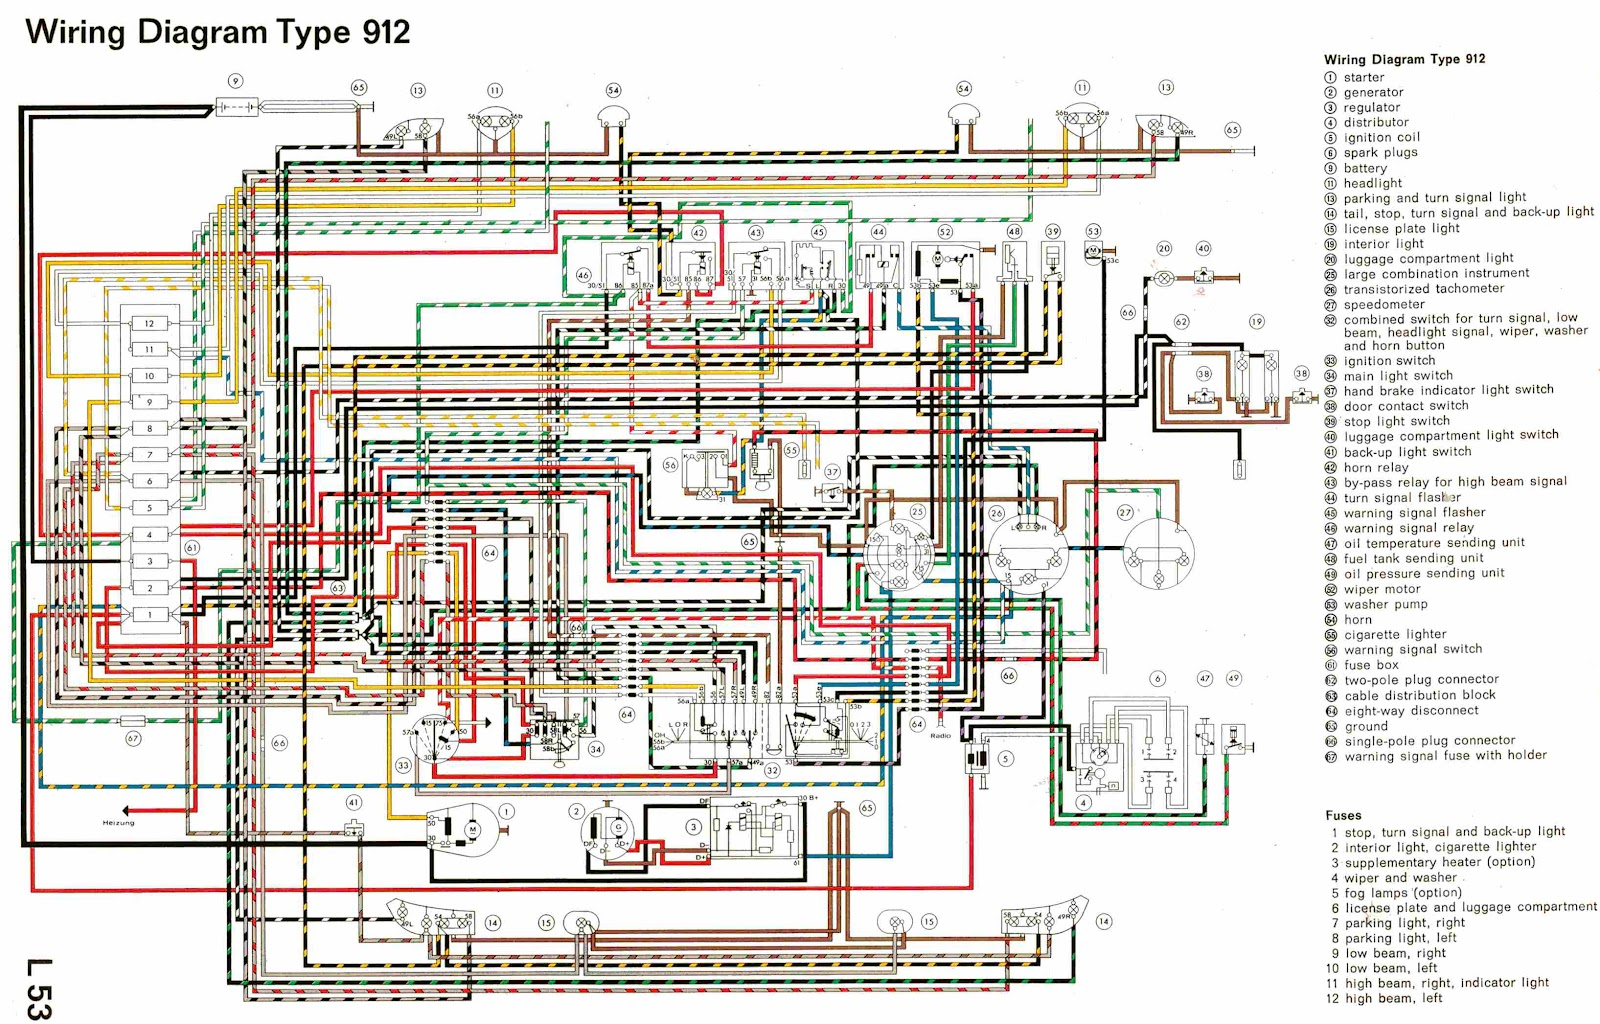 Electricity Wiring Diagrams 240 Volt Well Pump Diagram Porsche Type 912 Complete Electrical All